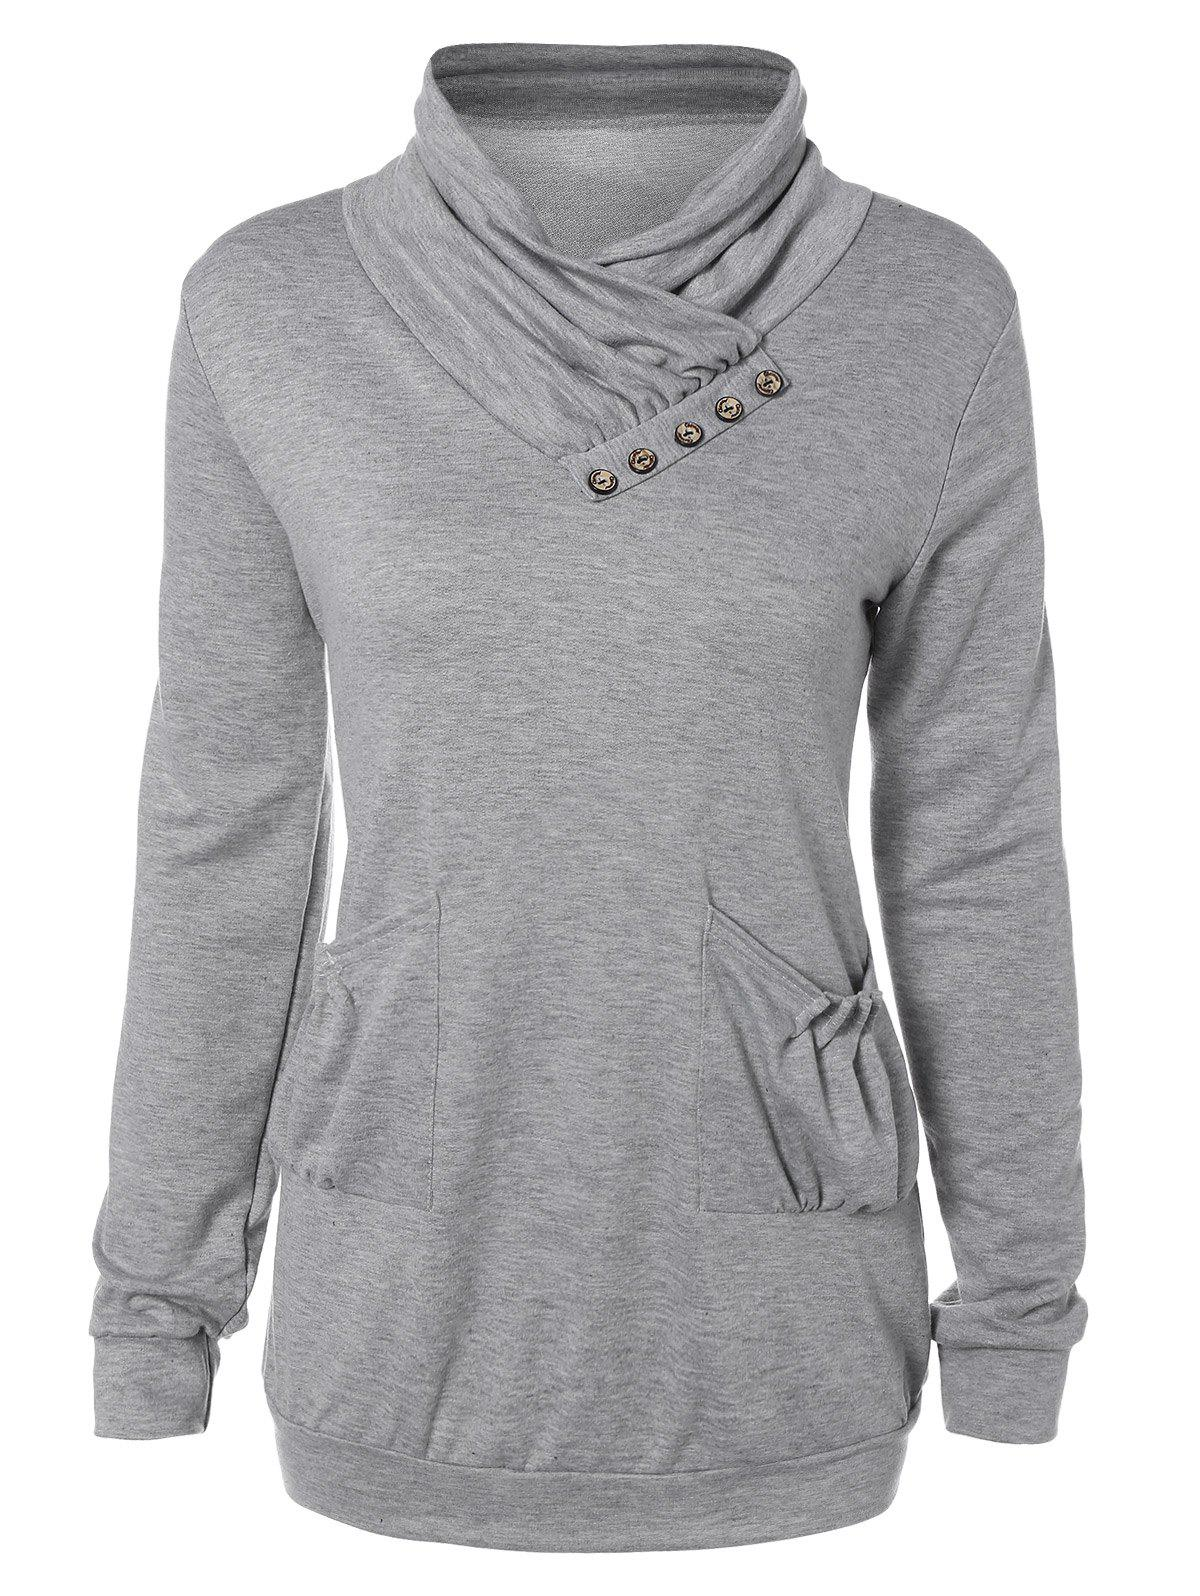 Heaps Collar Buttoned Pullover SweatshirtWomen<br><br><br>Size: M<br>Color: LIGHT GRAY